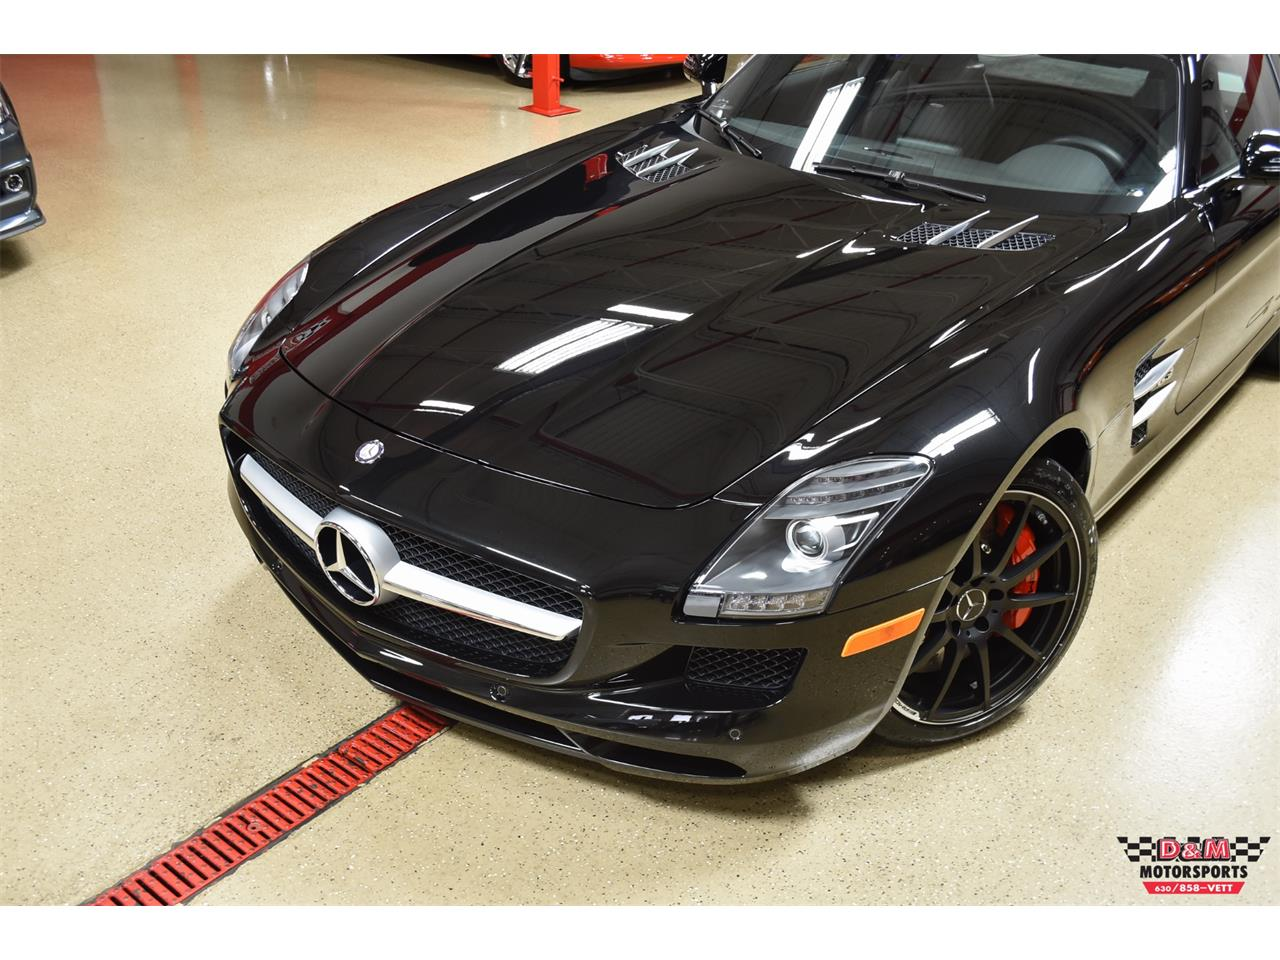 Large Picture of '12 Mercedes-Benz SLS AMG - $199,995.00 Offered by D & M Motorsports - PXCB